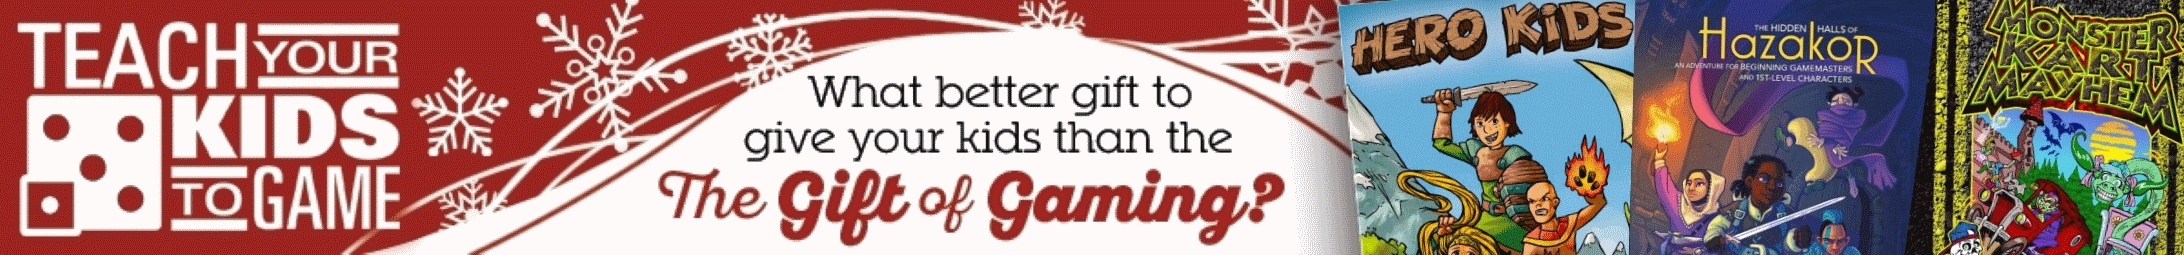 Teach Your Kids Holiday Sale @ DriveThruRPG.com